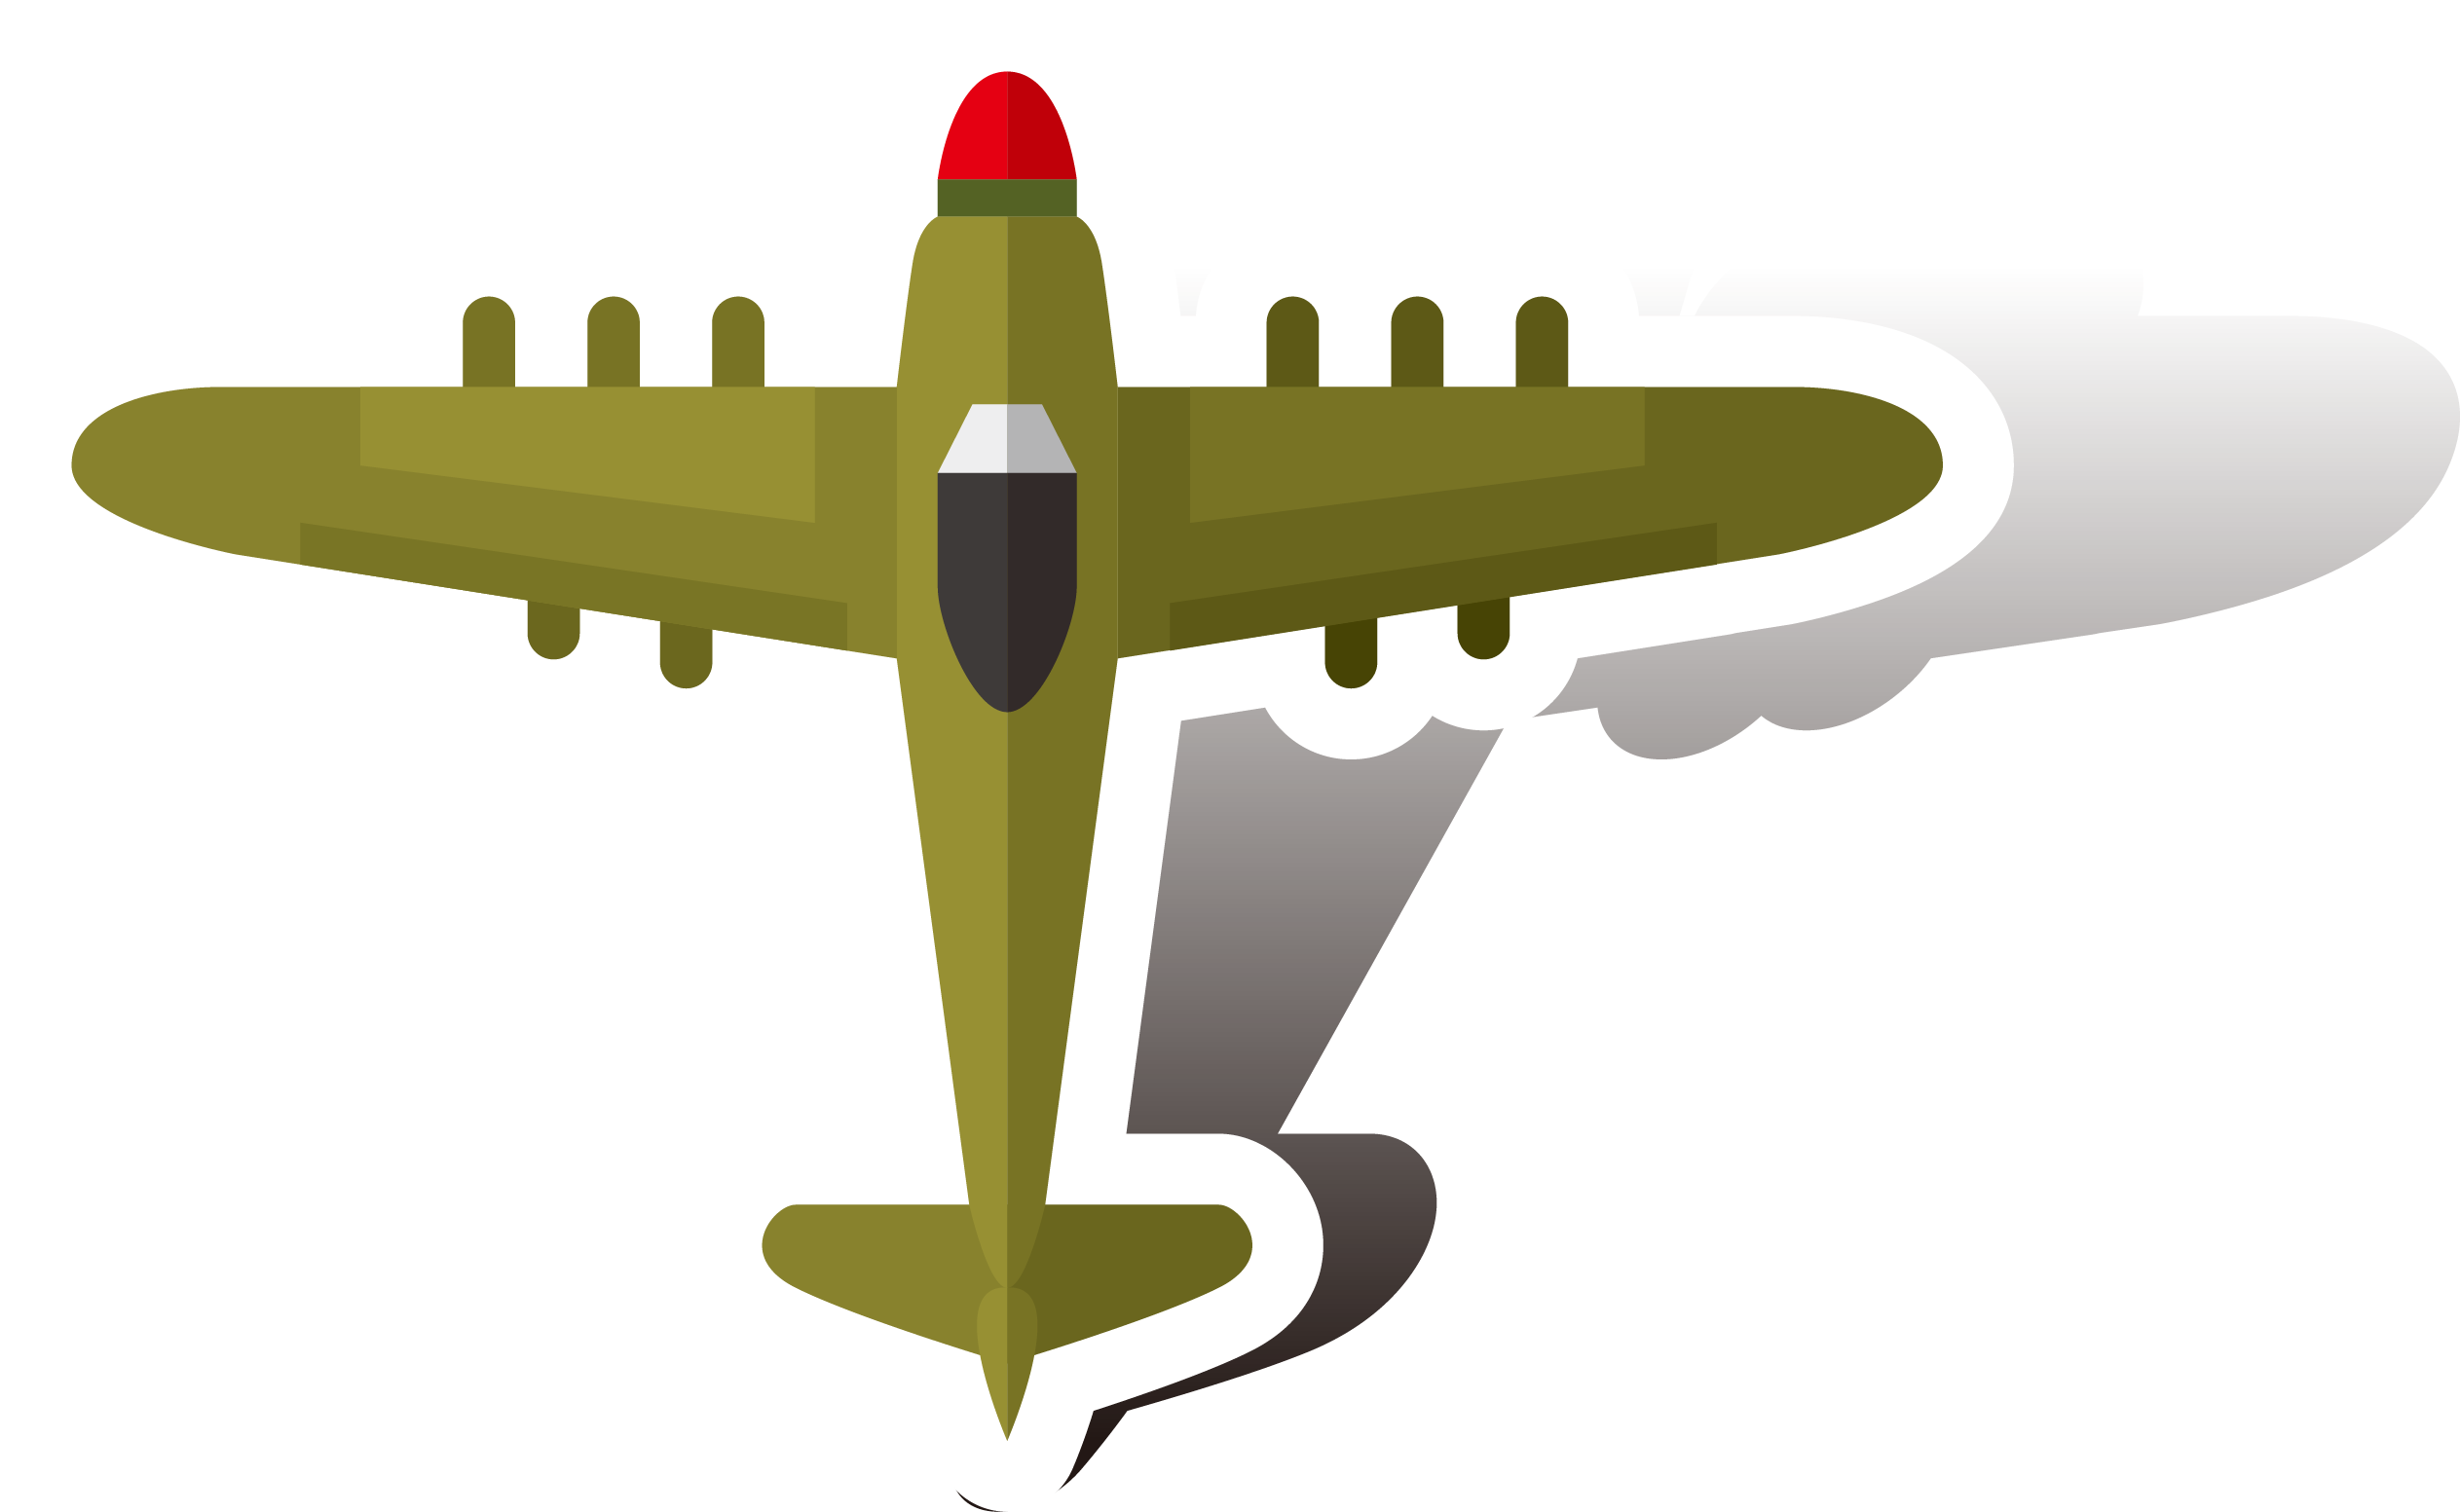 Airplane bomber second world. Pilot clipart aircraft engineer